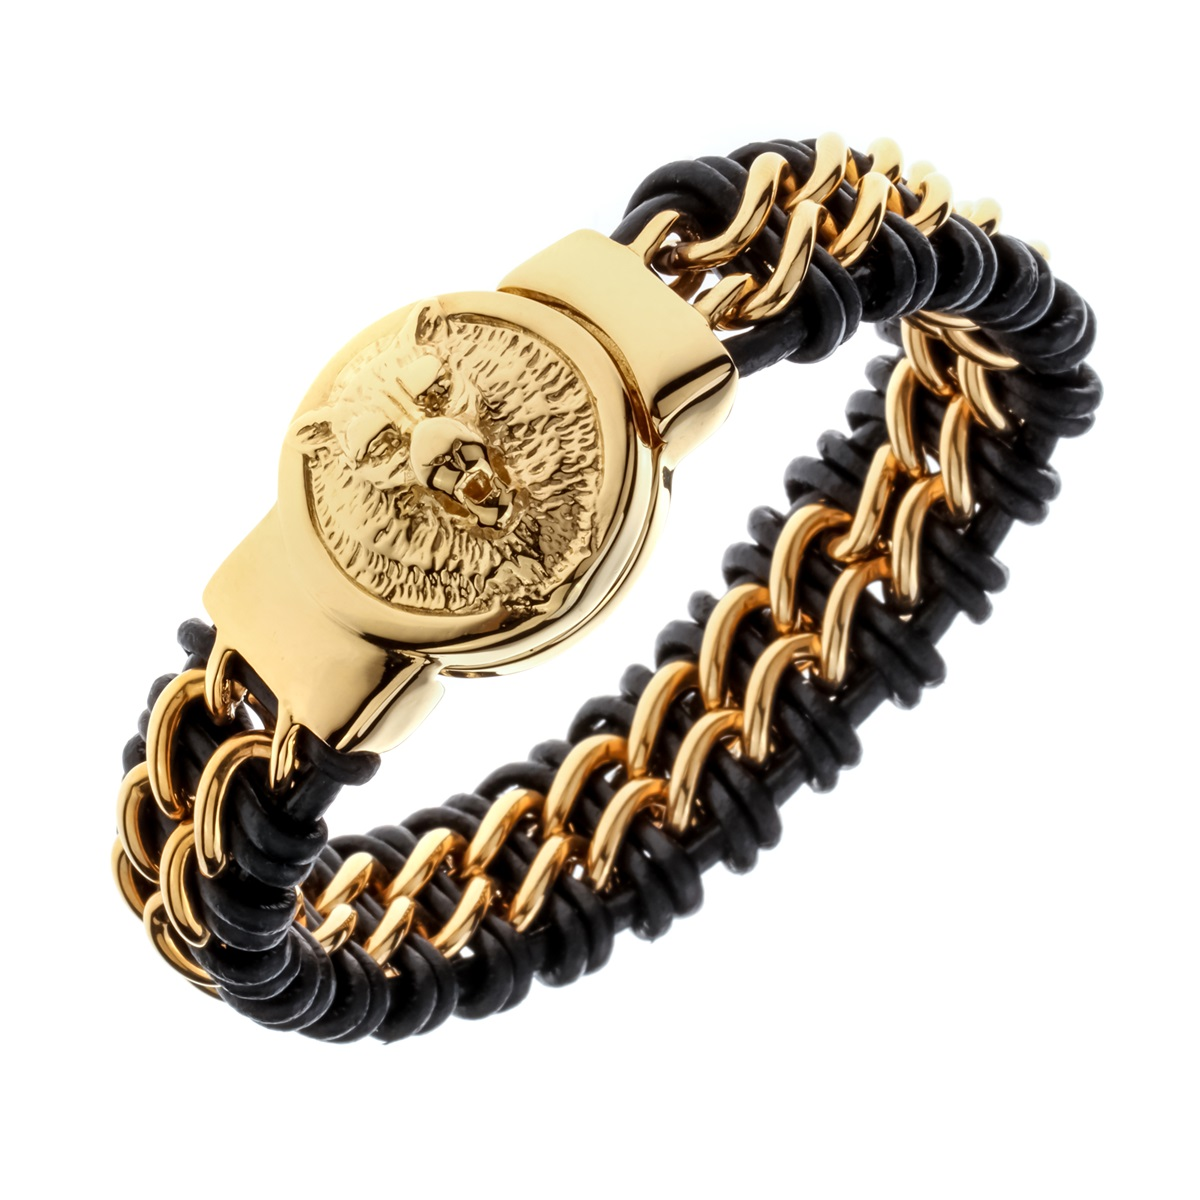 """Mens black leather stainless steel gold silver color wolf chain link bracelet heavy jewelry birthday gifts for dad him 9"""" D073"""